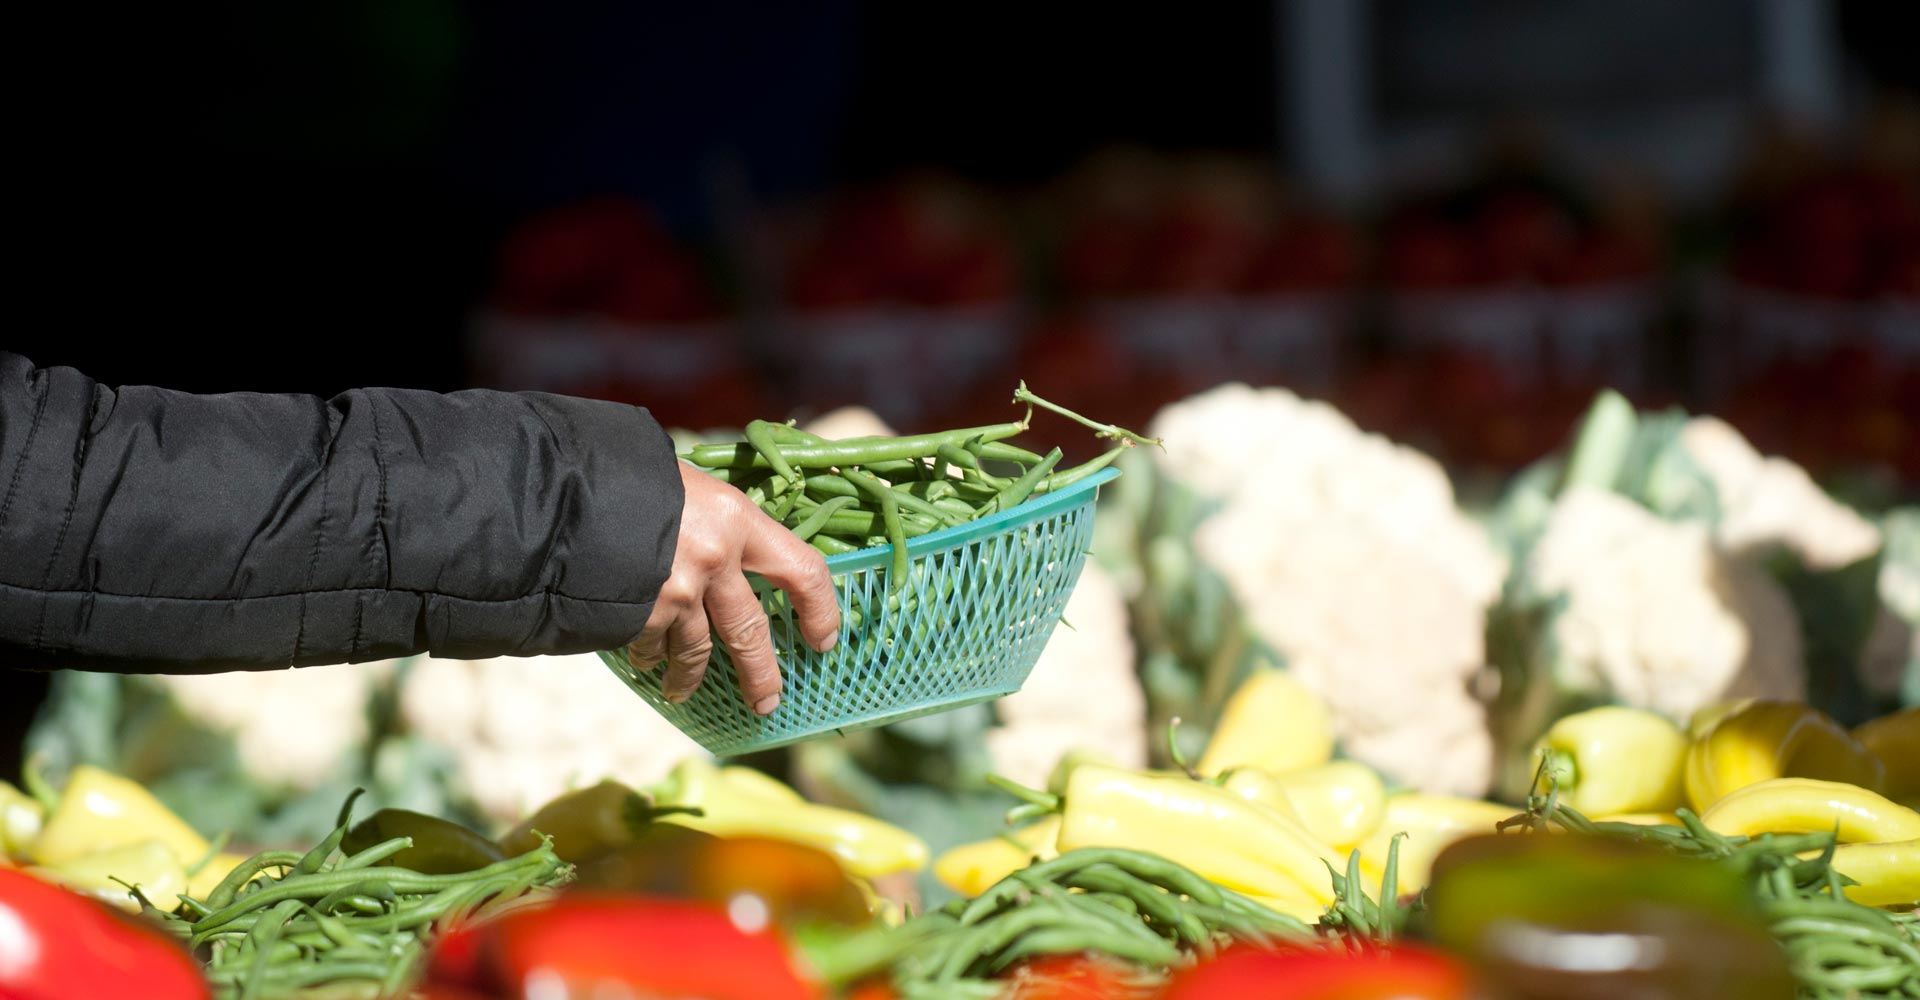 Hmong farmer placing vegetables on a table at a Saint Paul farmers market